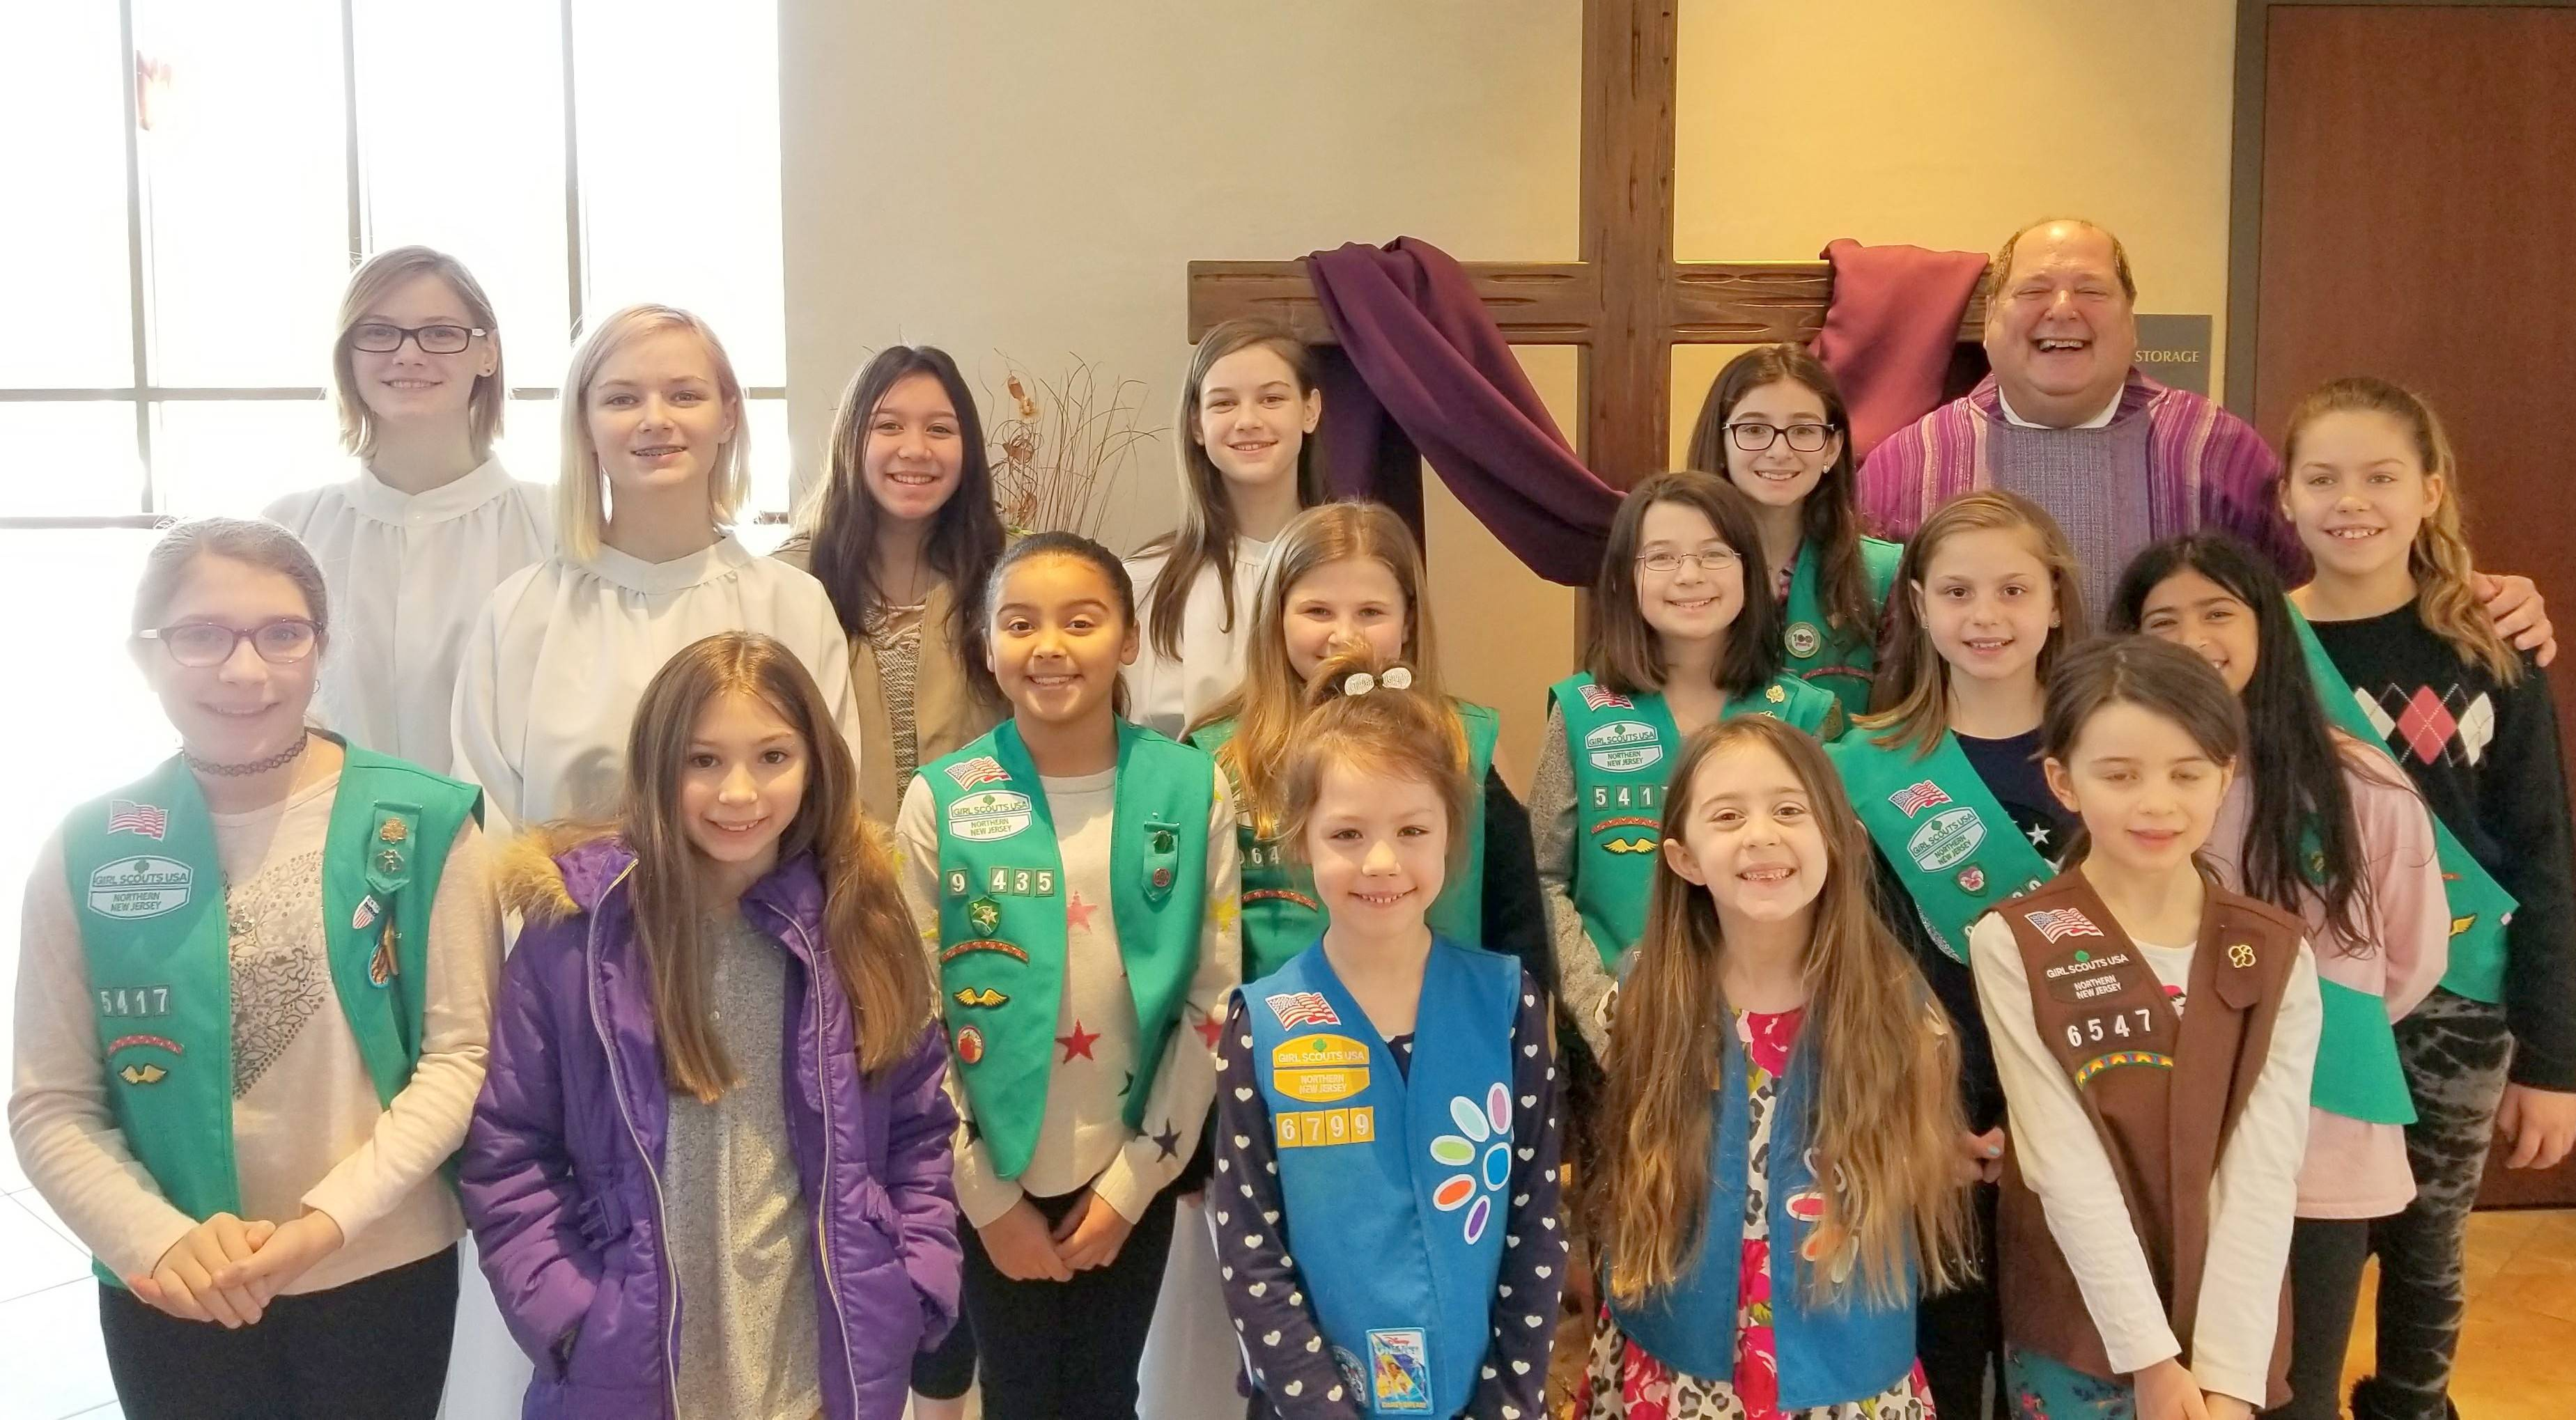 ad6827a664748ea50916_Girl_Scout_Sunday_March_11__2018_by_Deb_Kozell___CROP.jpg